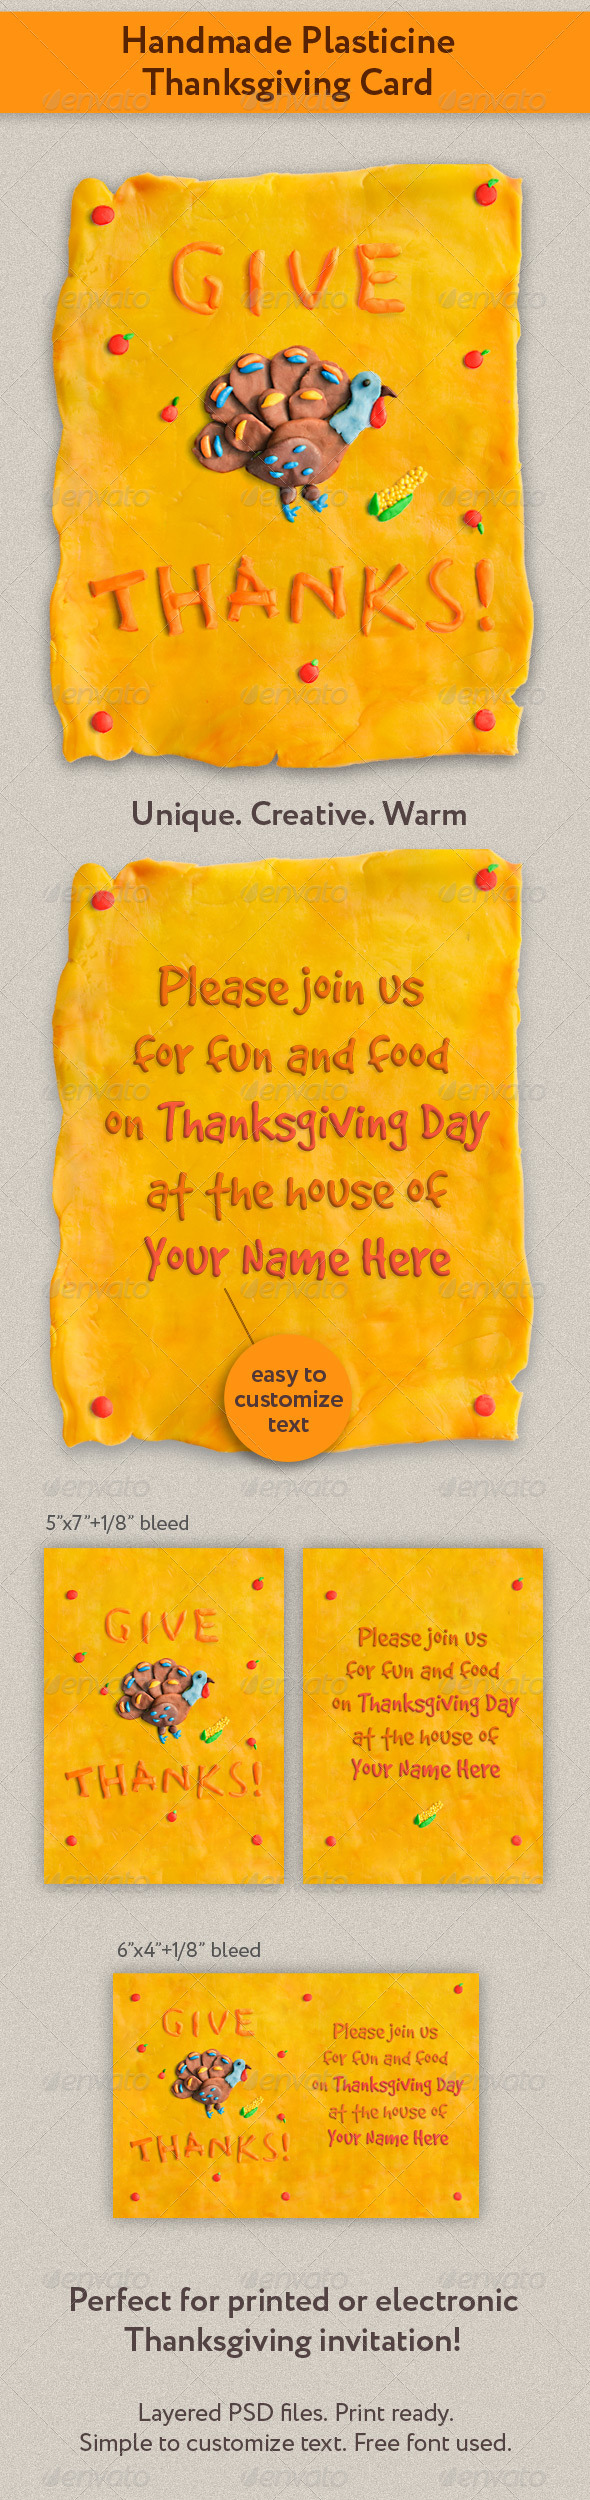 Graphic River Handmade Plasticine Thanksgiving Card Print Templates -  Cards & Invites  Greeting Cards  Holiday 756871